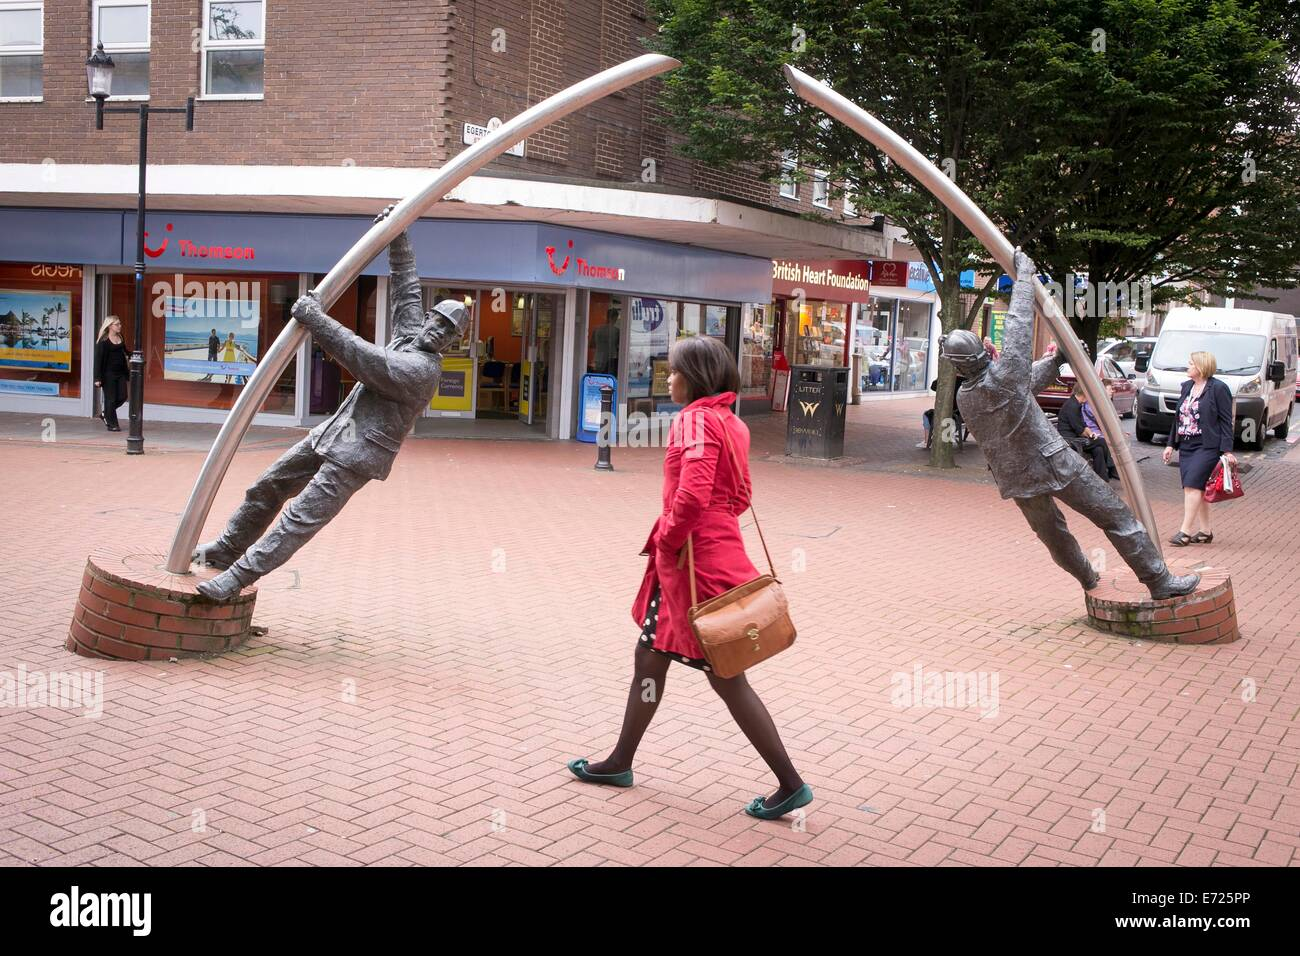 The Arc Sculpture is located at the junction of Lord Street and Egerton Street in Wrexham North East Wales. Stock Photo